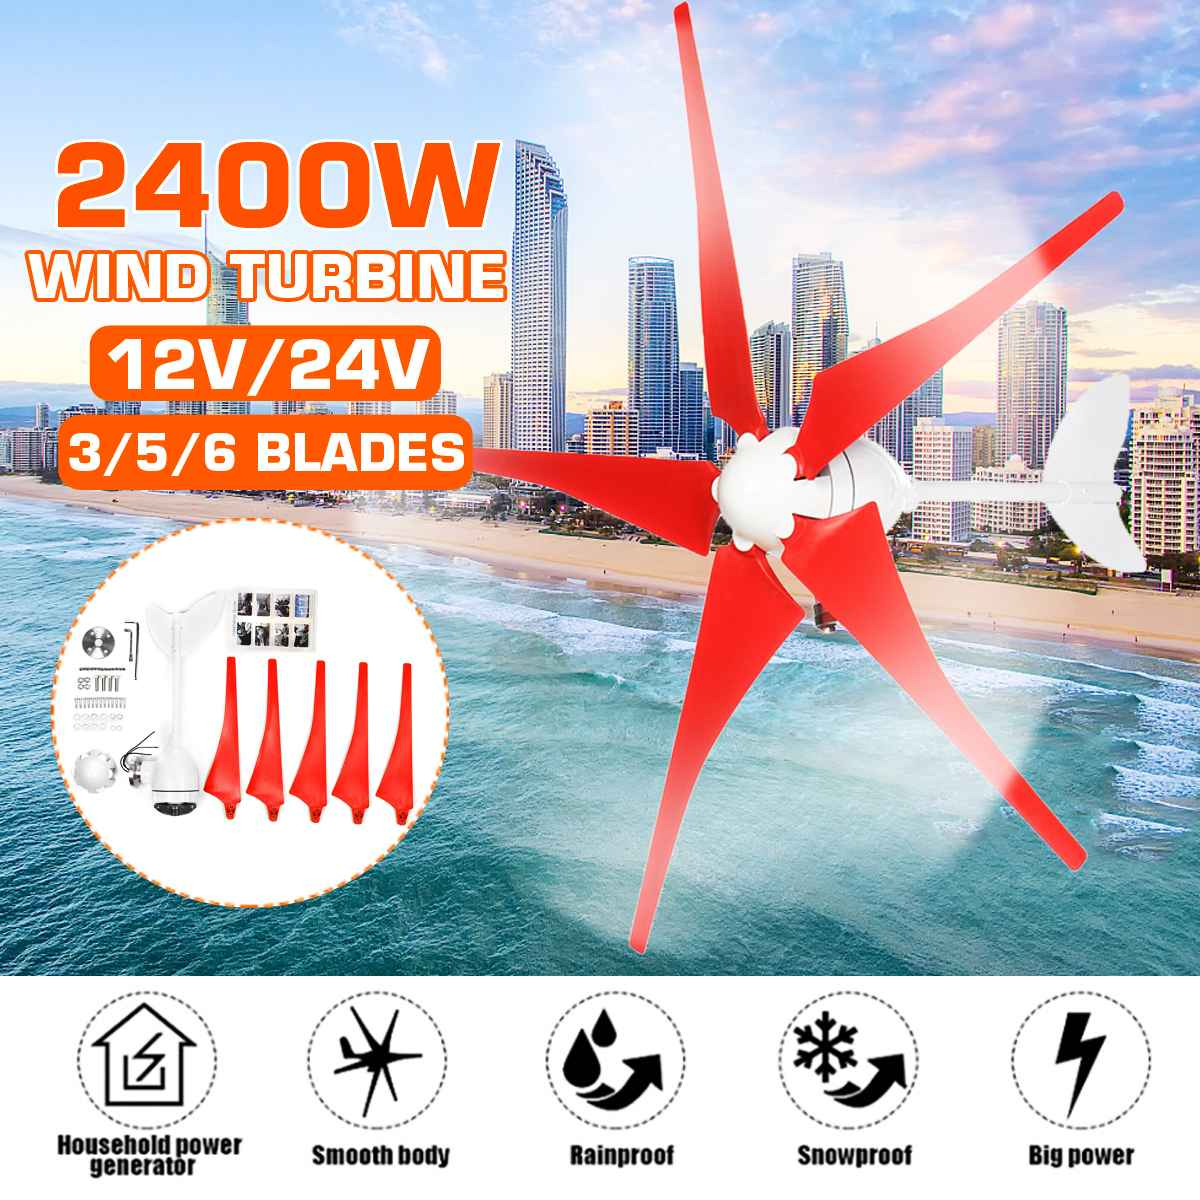 2400W 3/5/6 Blade Wind Turbines Generator AC DC 12V/24V Motor Kit Garden Street Lights Windmill Energy Turbines Charge